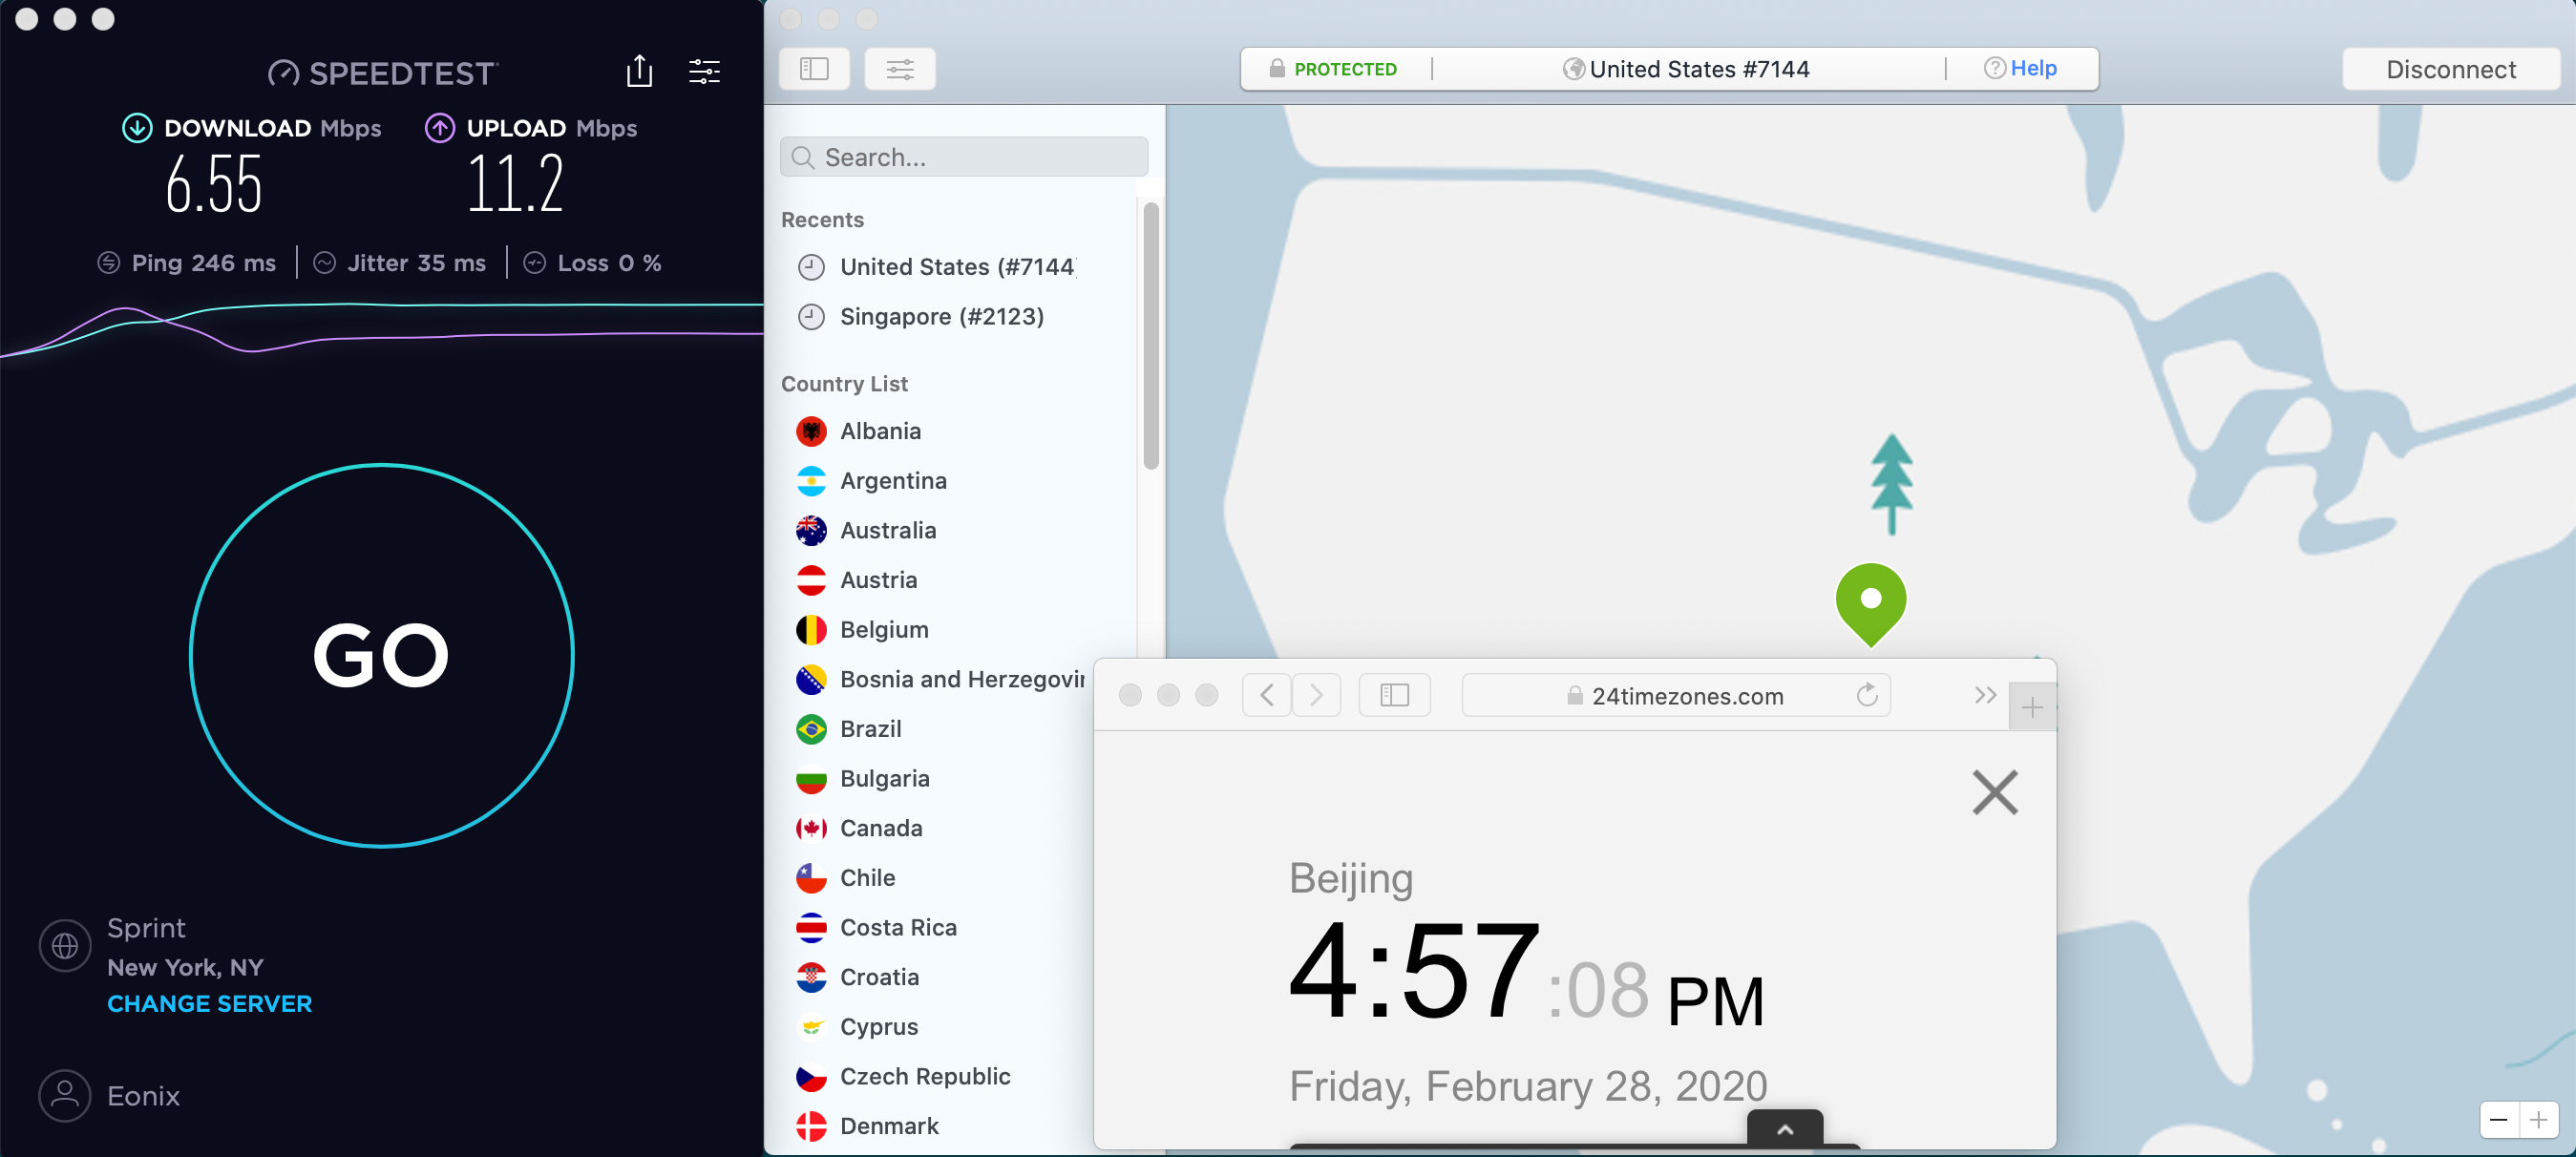 Macbook NordVPN USA #7144 中国VPN翻墙 科学上网 SpeedTest测速 2020-02-28 at 16.57.09